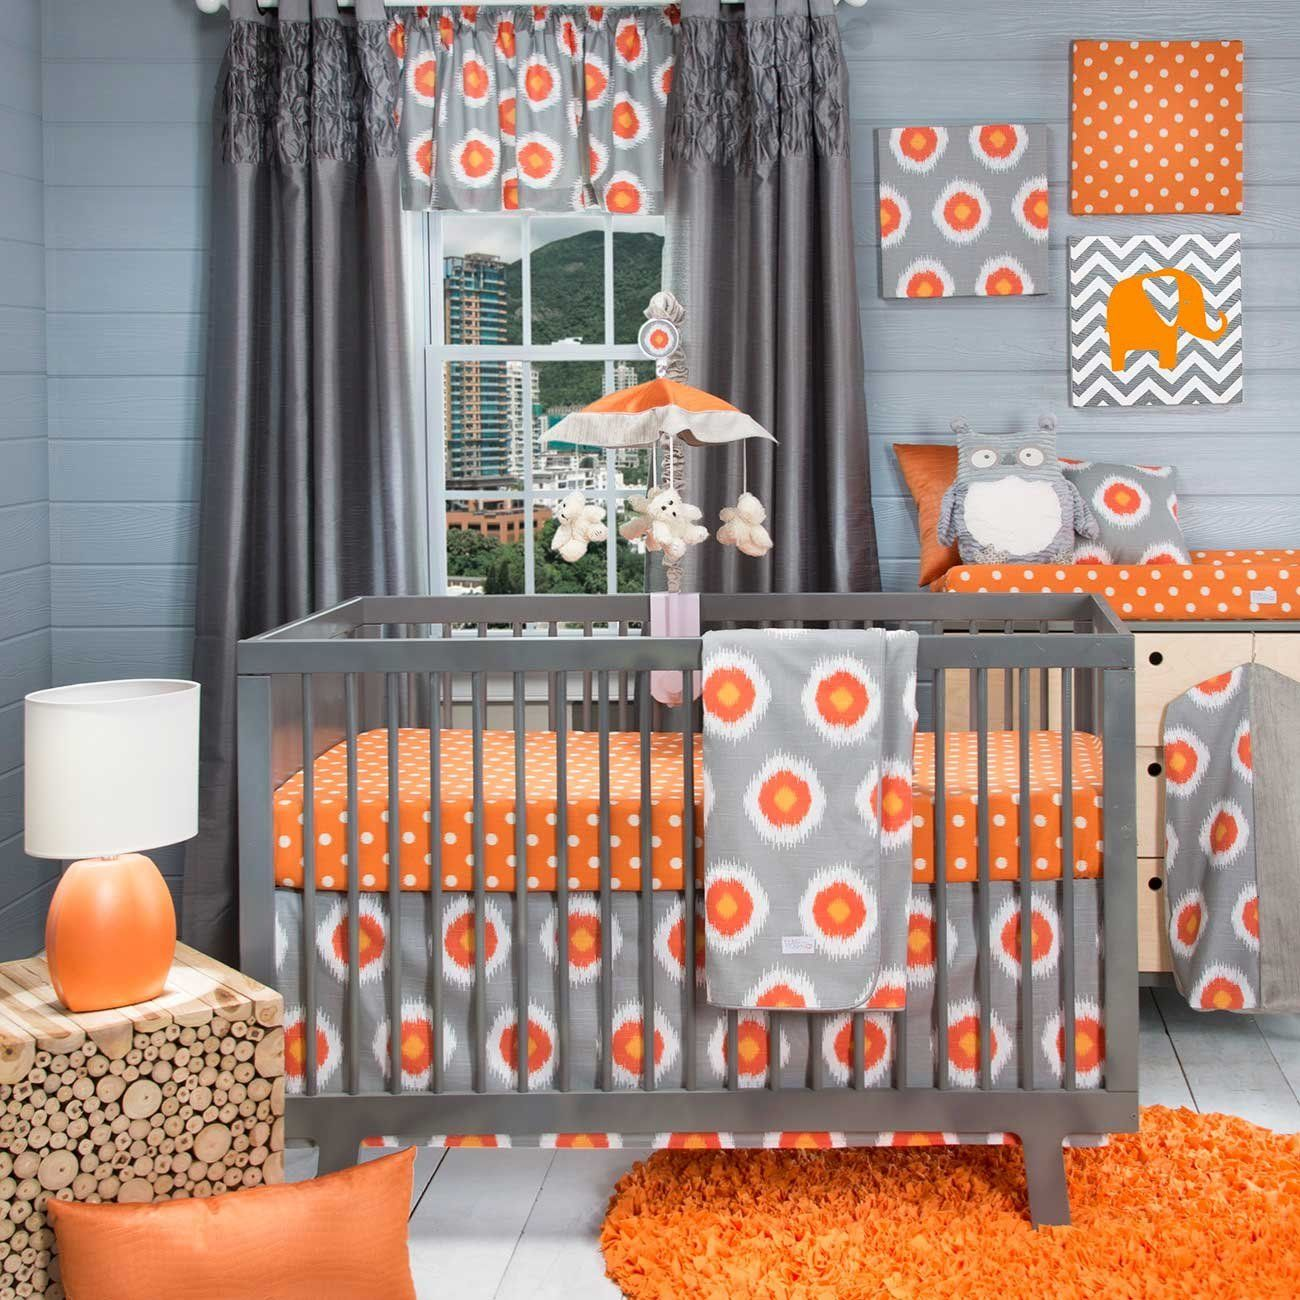 Baby Nursery Unique Baby Nursery Room Decoration With Grey And Orange Theme Complete With Grey Curtains R Crib Bedding Baby Crib Bedding Baby Nursery Decor